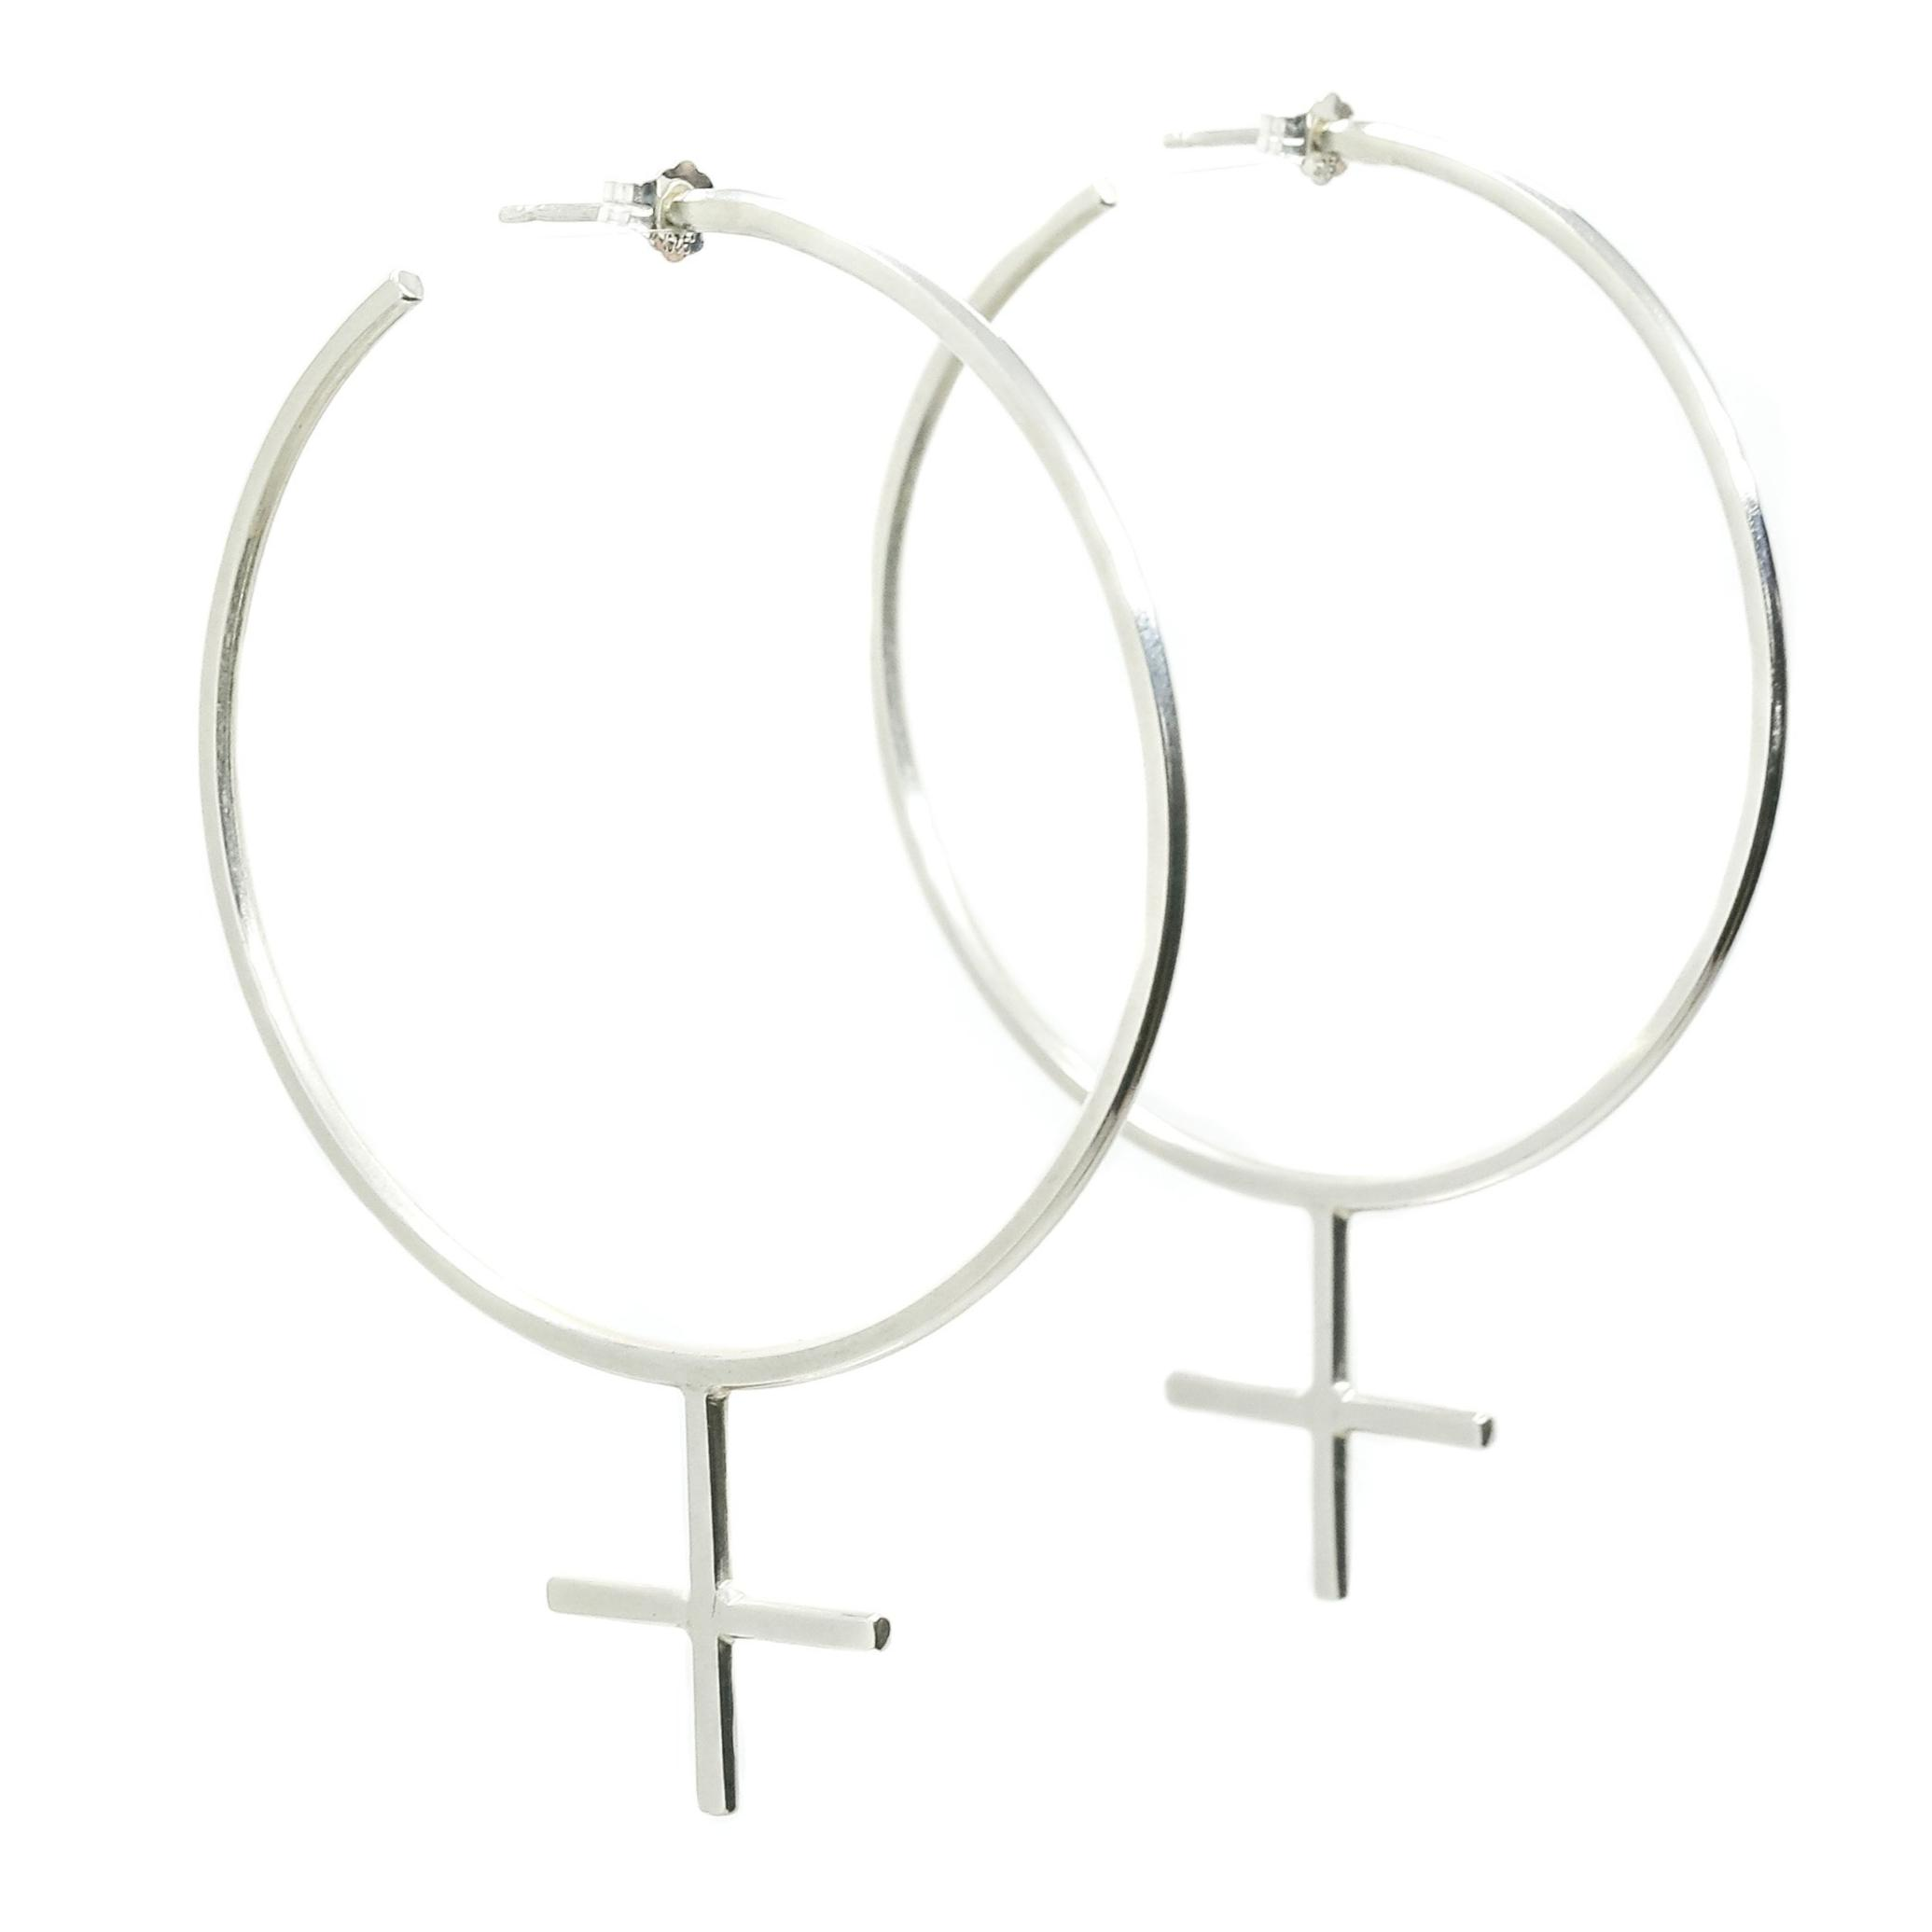 The Venus Hoops.